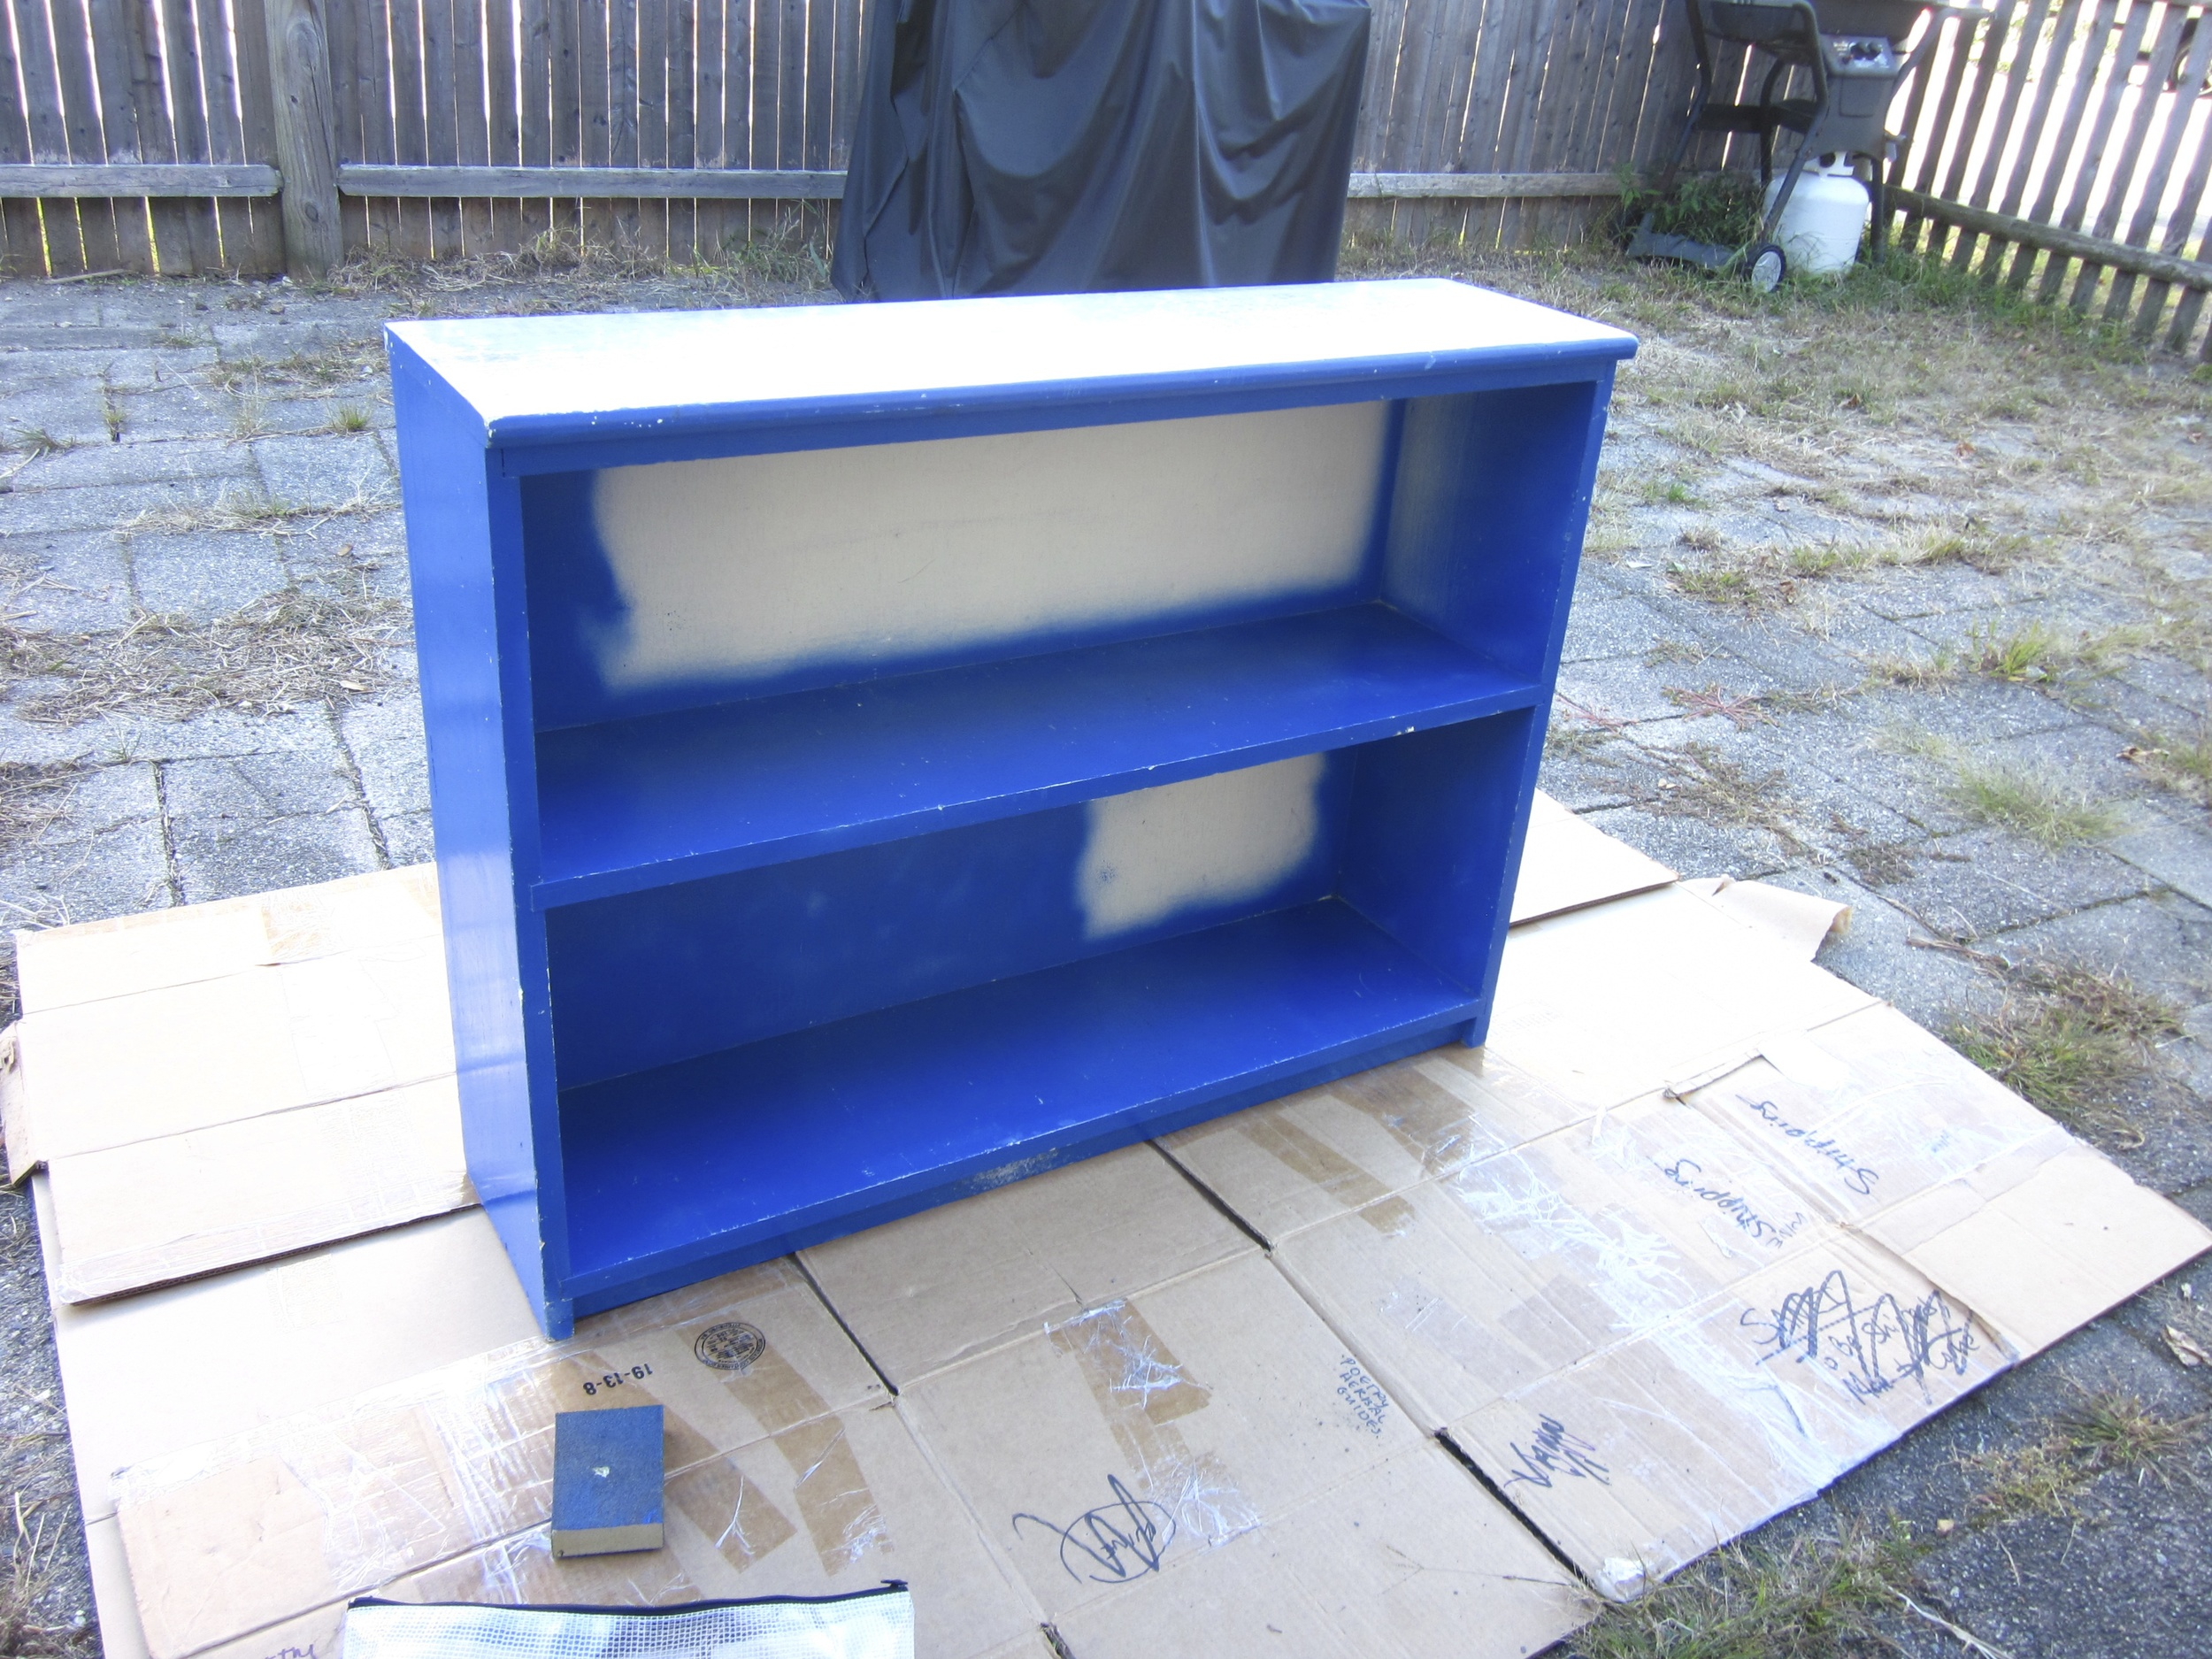 Good ol' piece of furniture, like you probably have in your basement or old bedroom or something. Get ready to make that thing gorgeous!